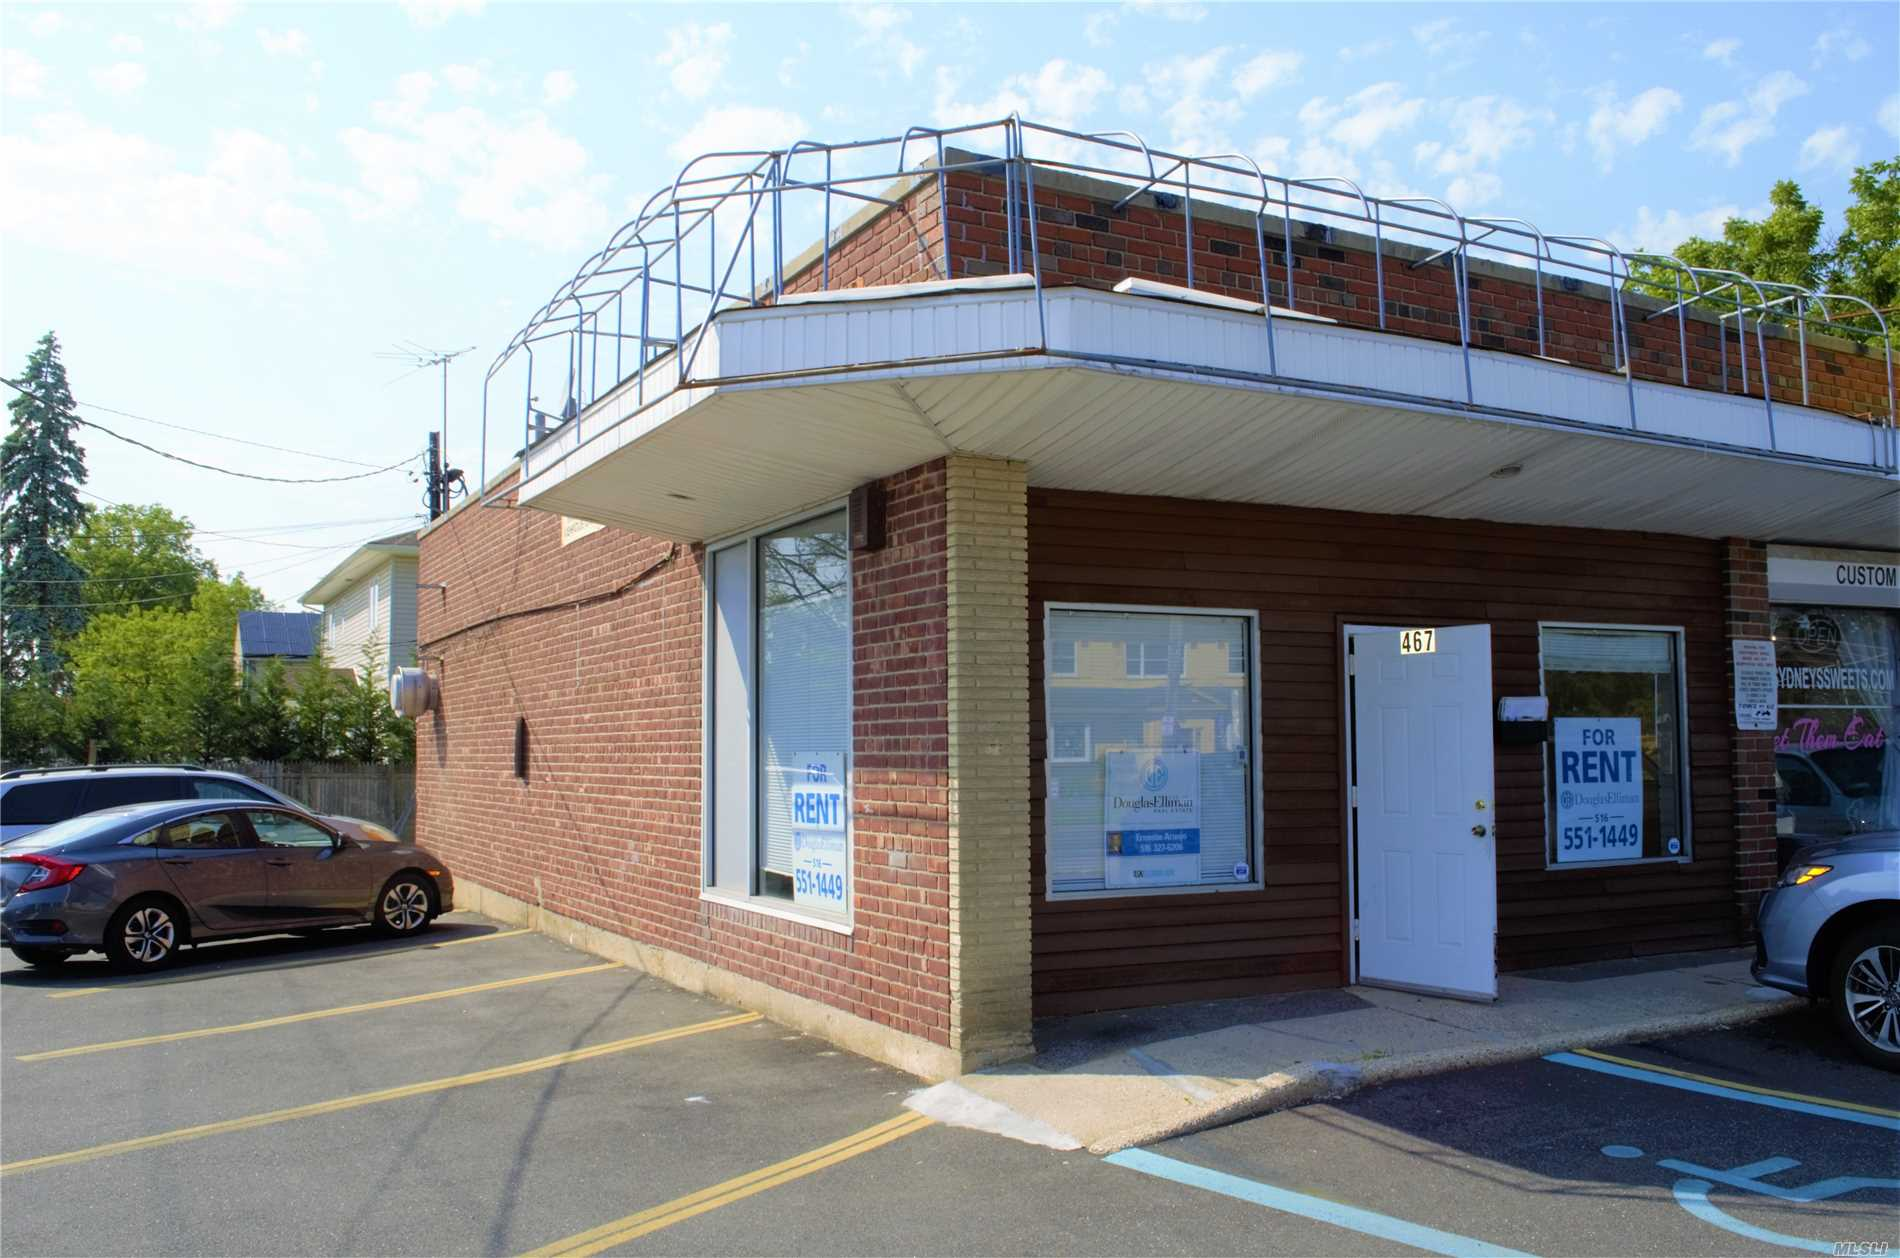 Store Front. Office Space. About 1, 000 Square Feet Of Space. Very Visible Corner Of Hempstead Avenue. High Ceiling. 1/2 A Bath. Central Air Conditioning. Tenant Pays All Utilities. About 14 Spaces For Customers/Clients/Employees. Close To All.